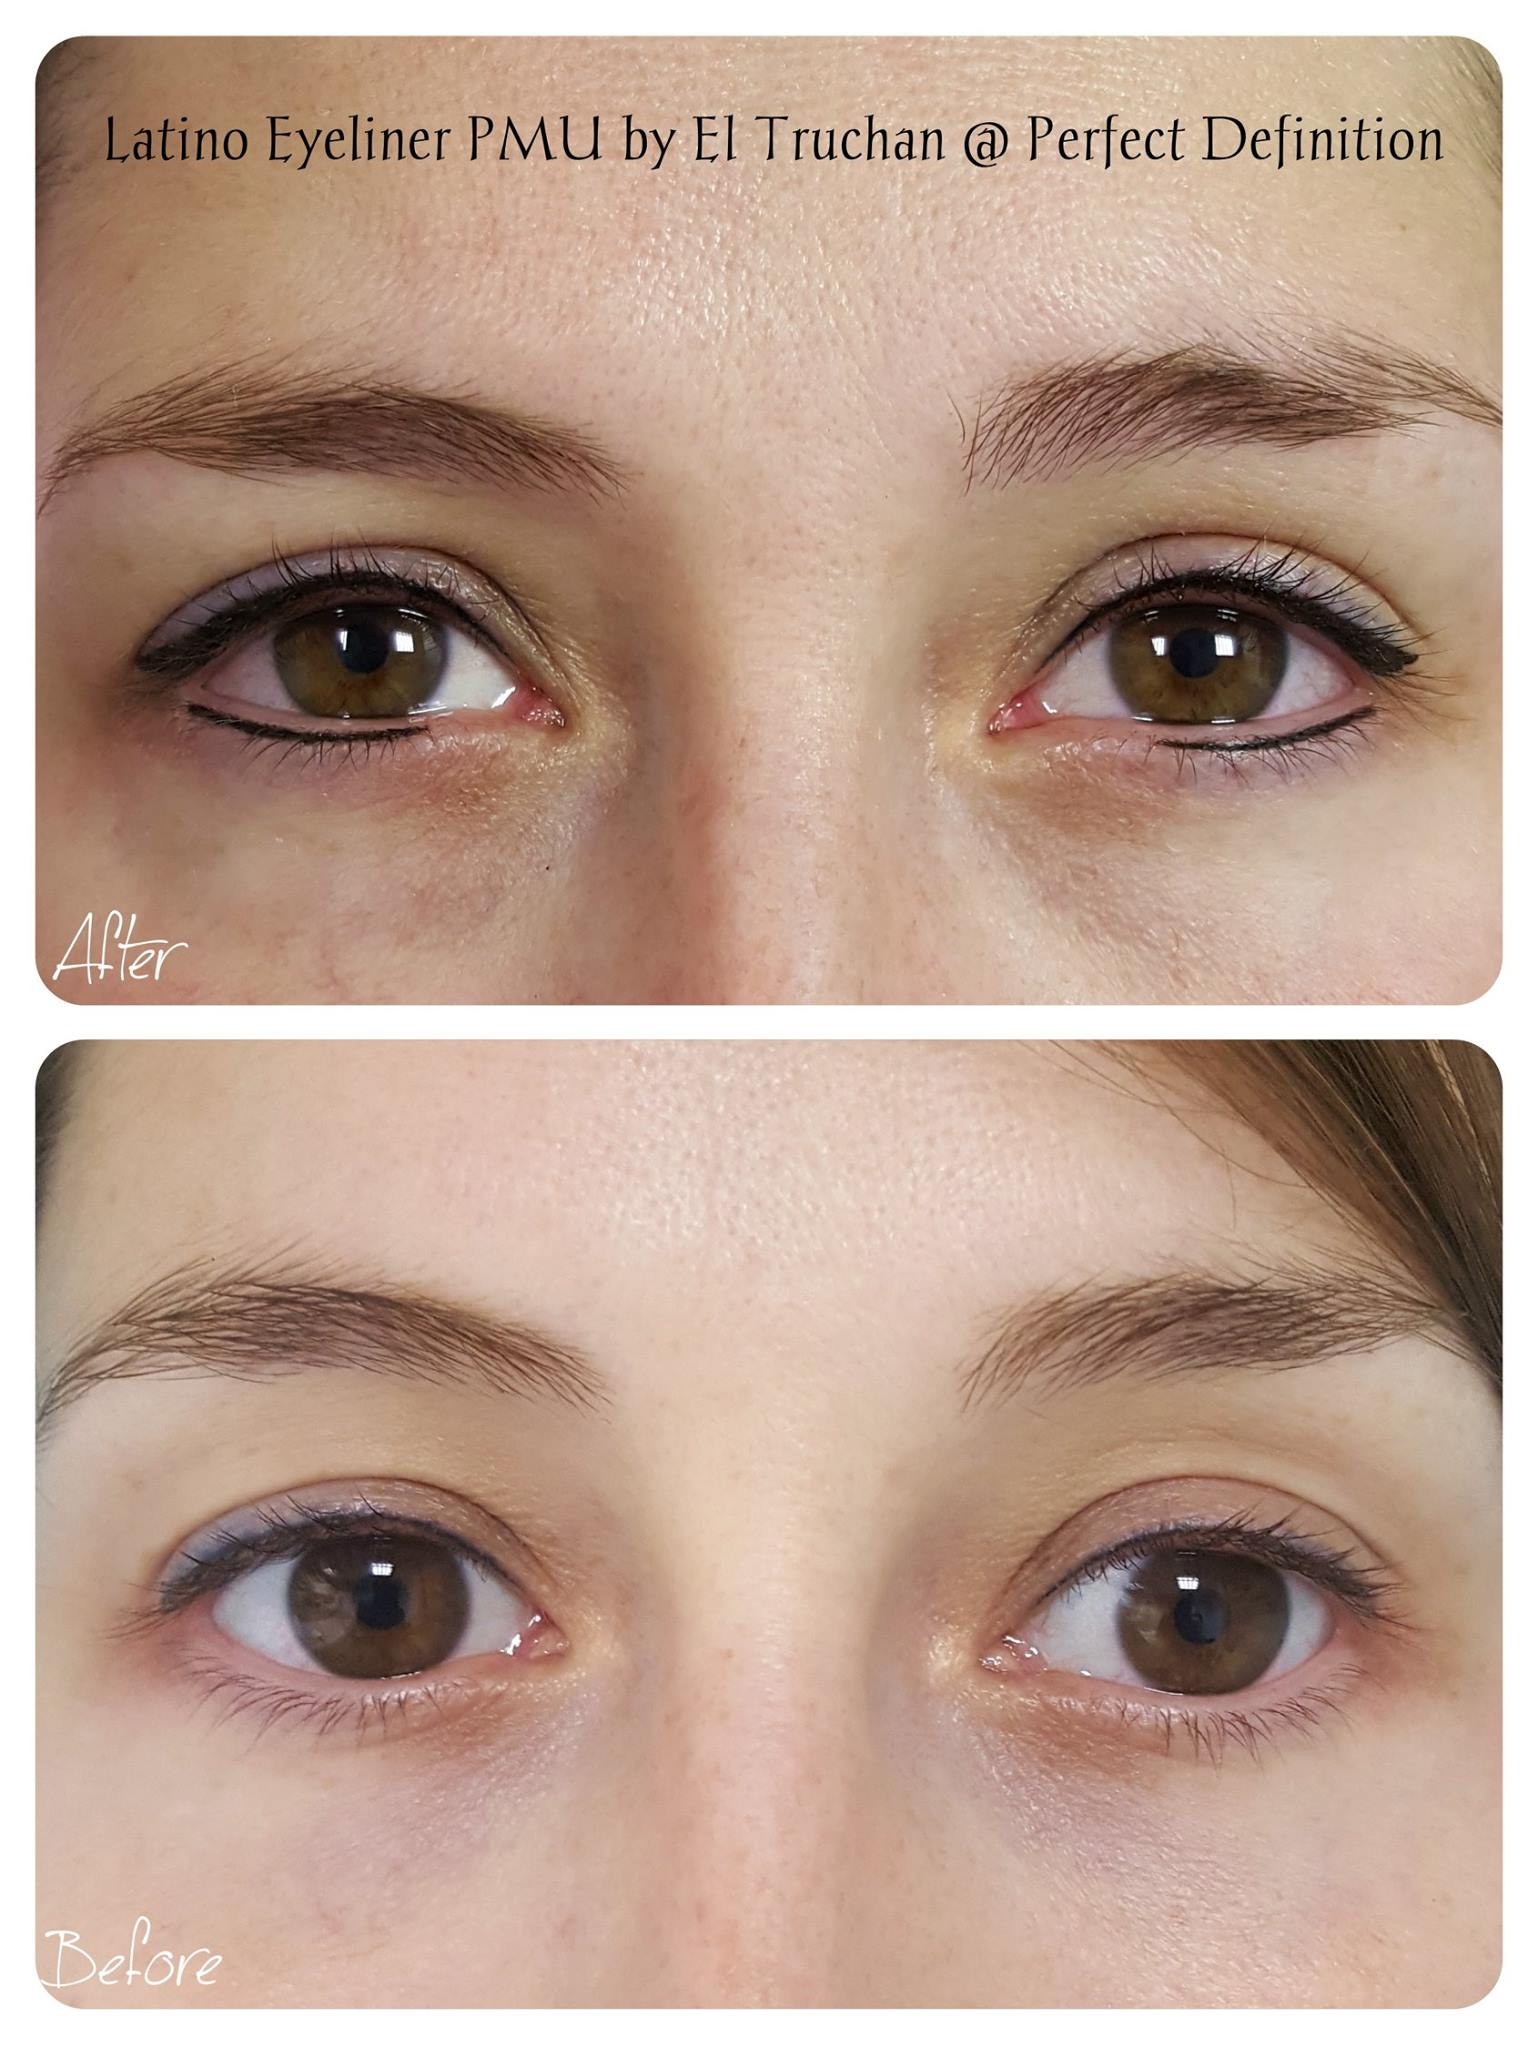 Latino Eyeliner Permanent Makeup by El Truchan _ Perfect Definition